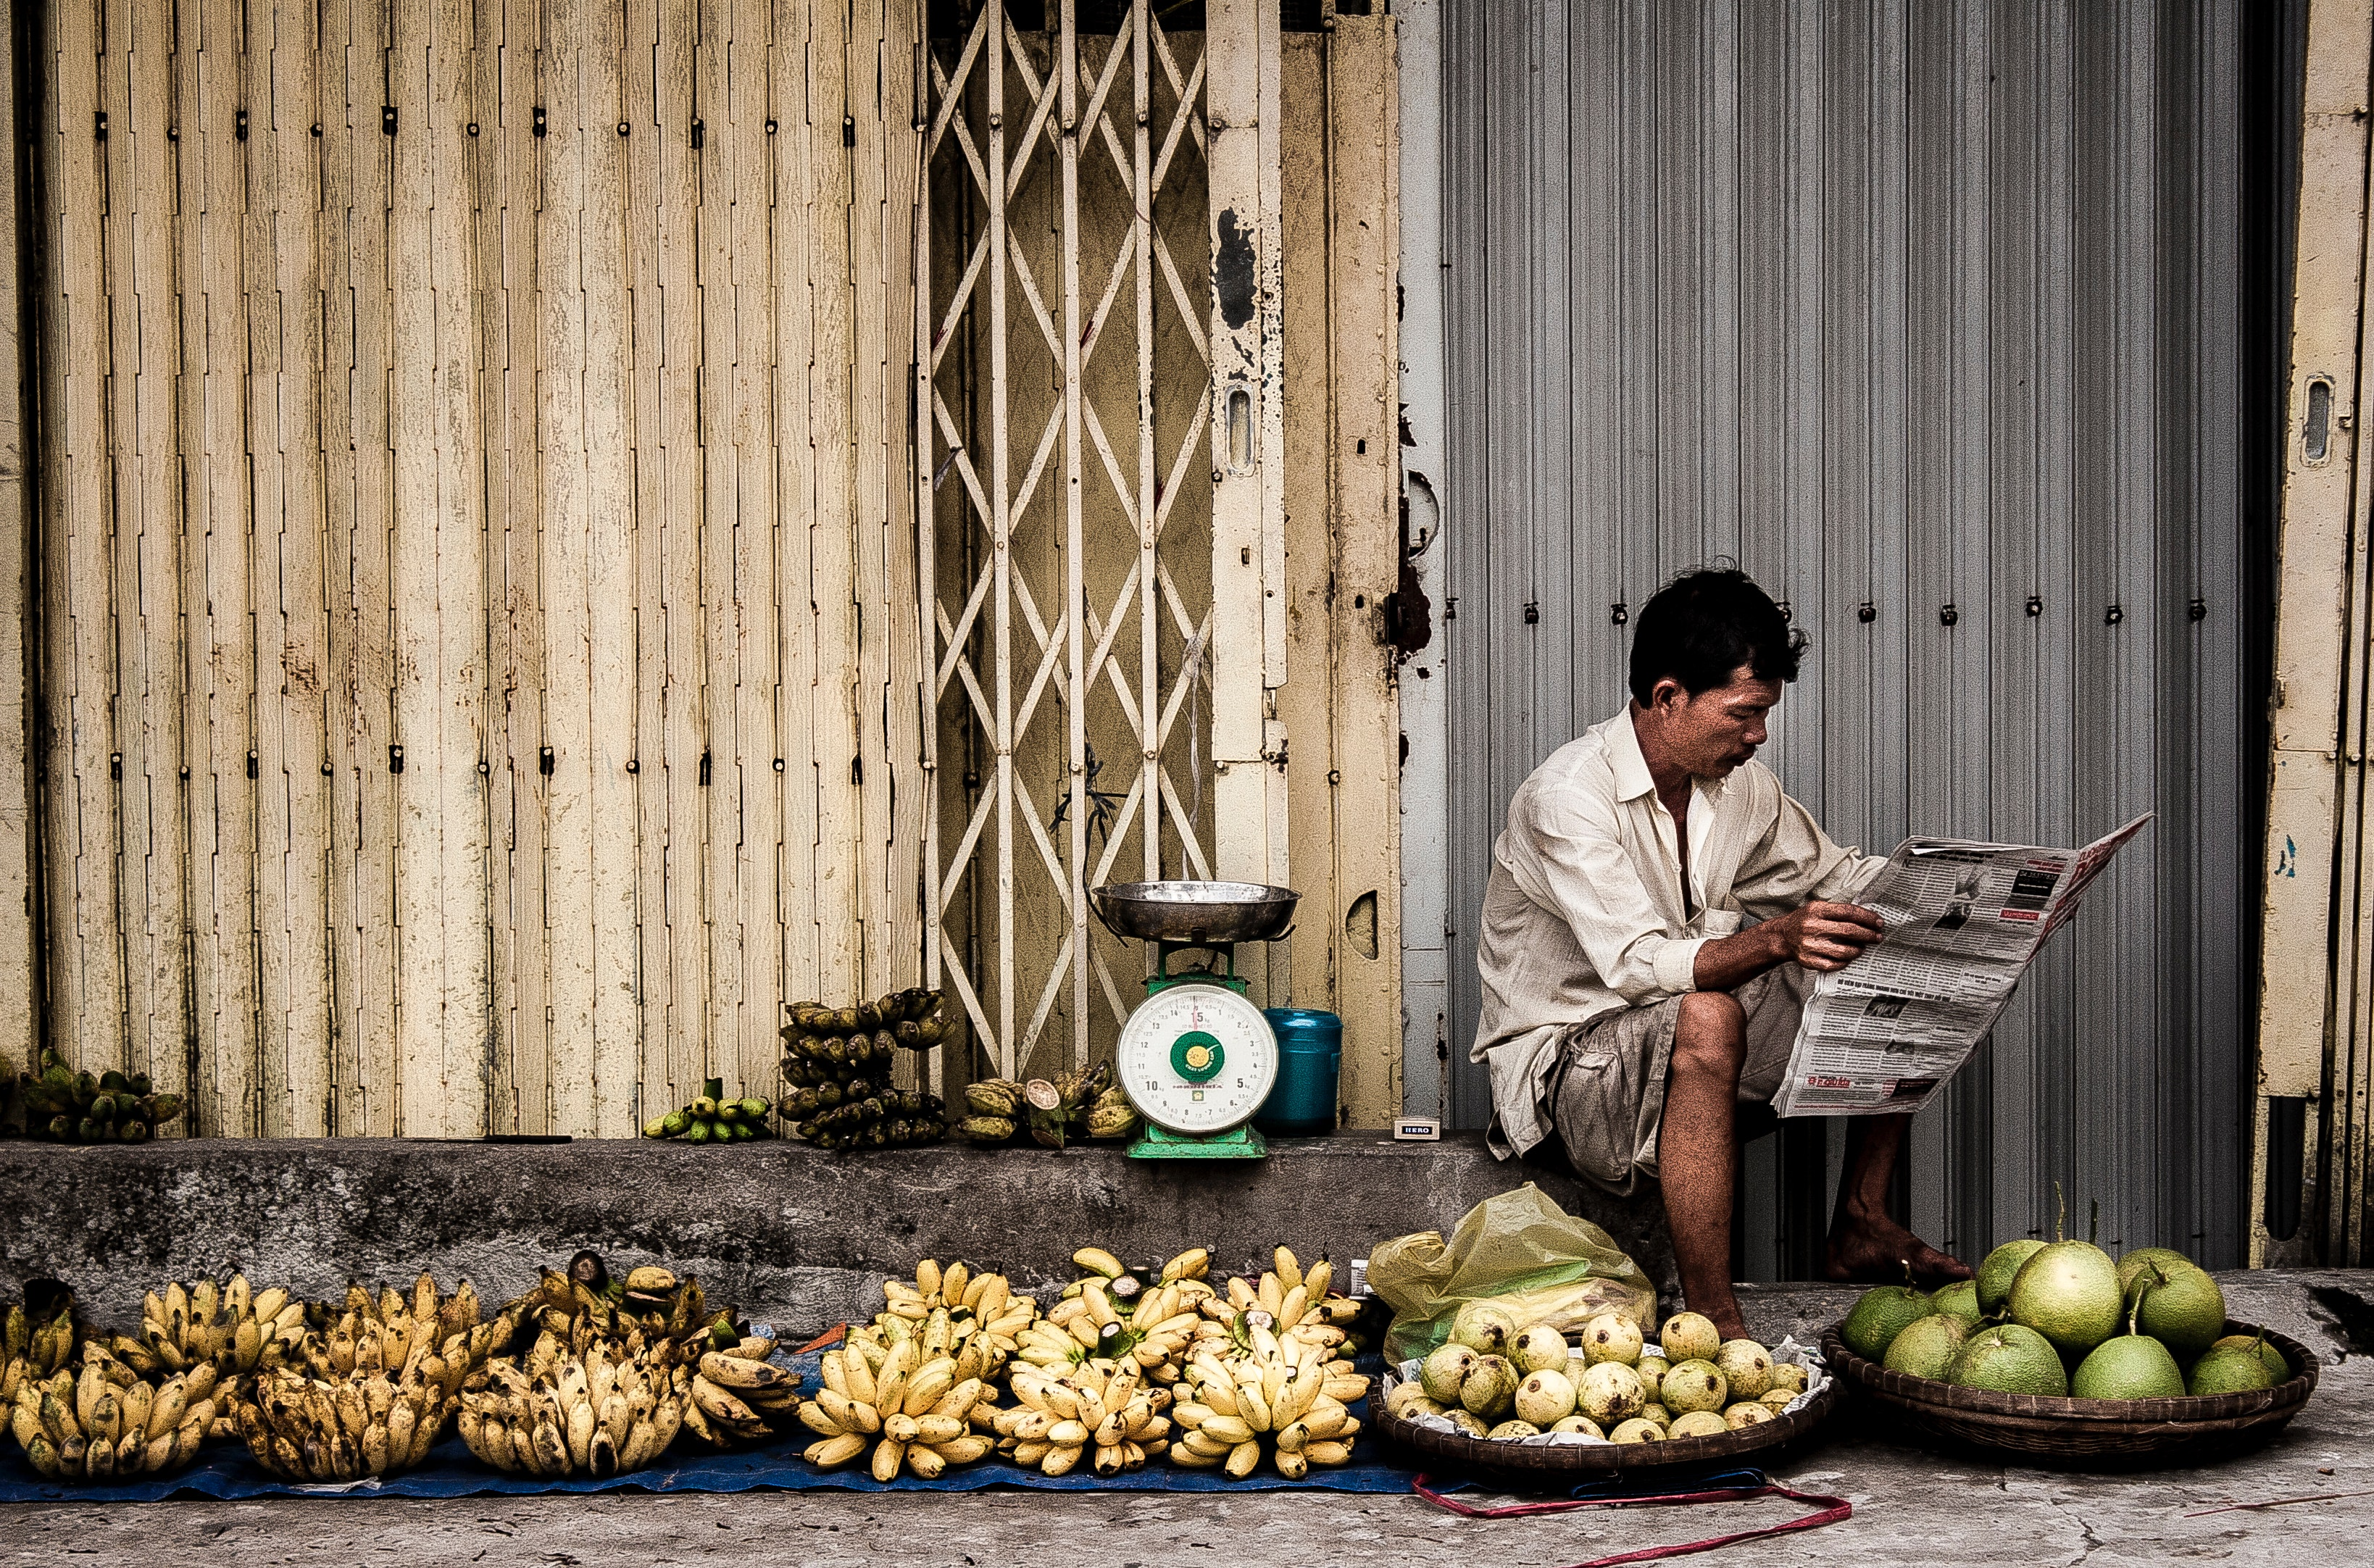 Man Sitting Near Fruits, Adult, Newspaper, Wear, Vietnamese, HQ Photo